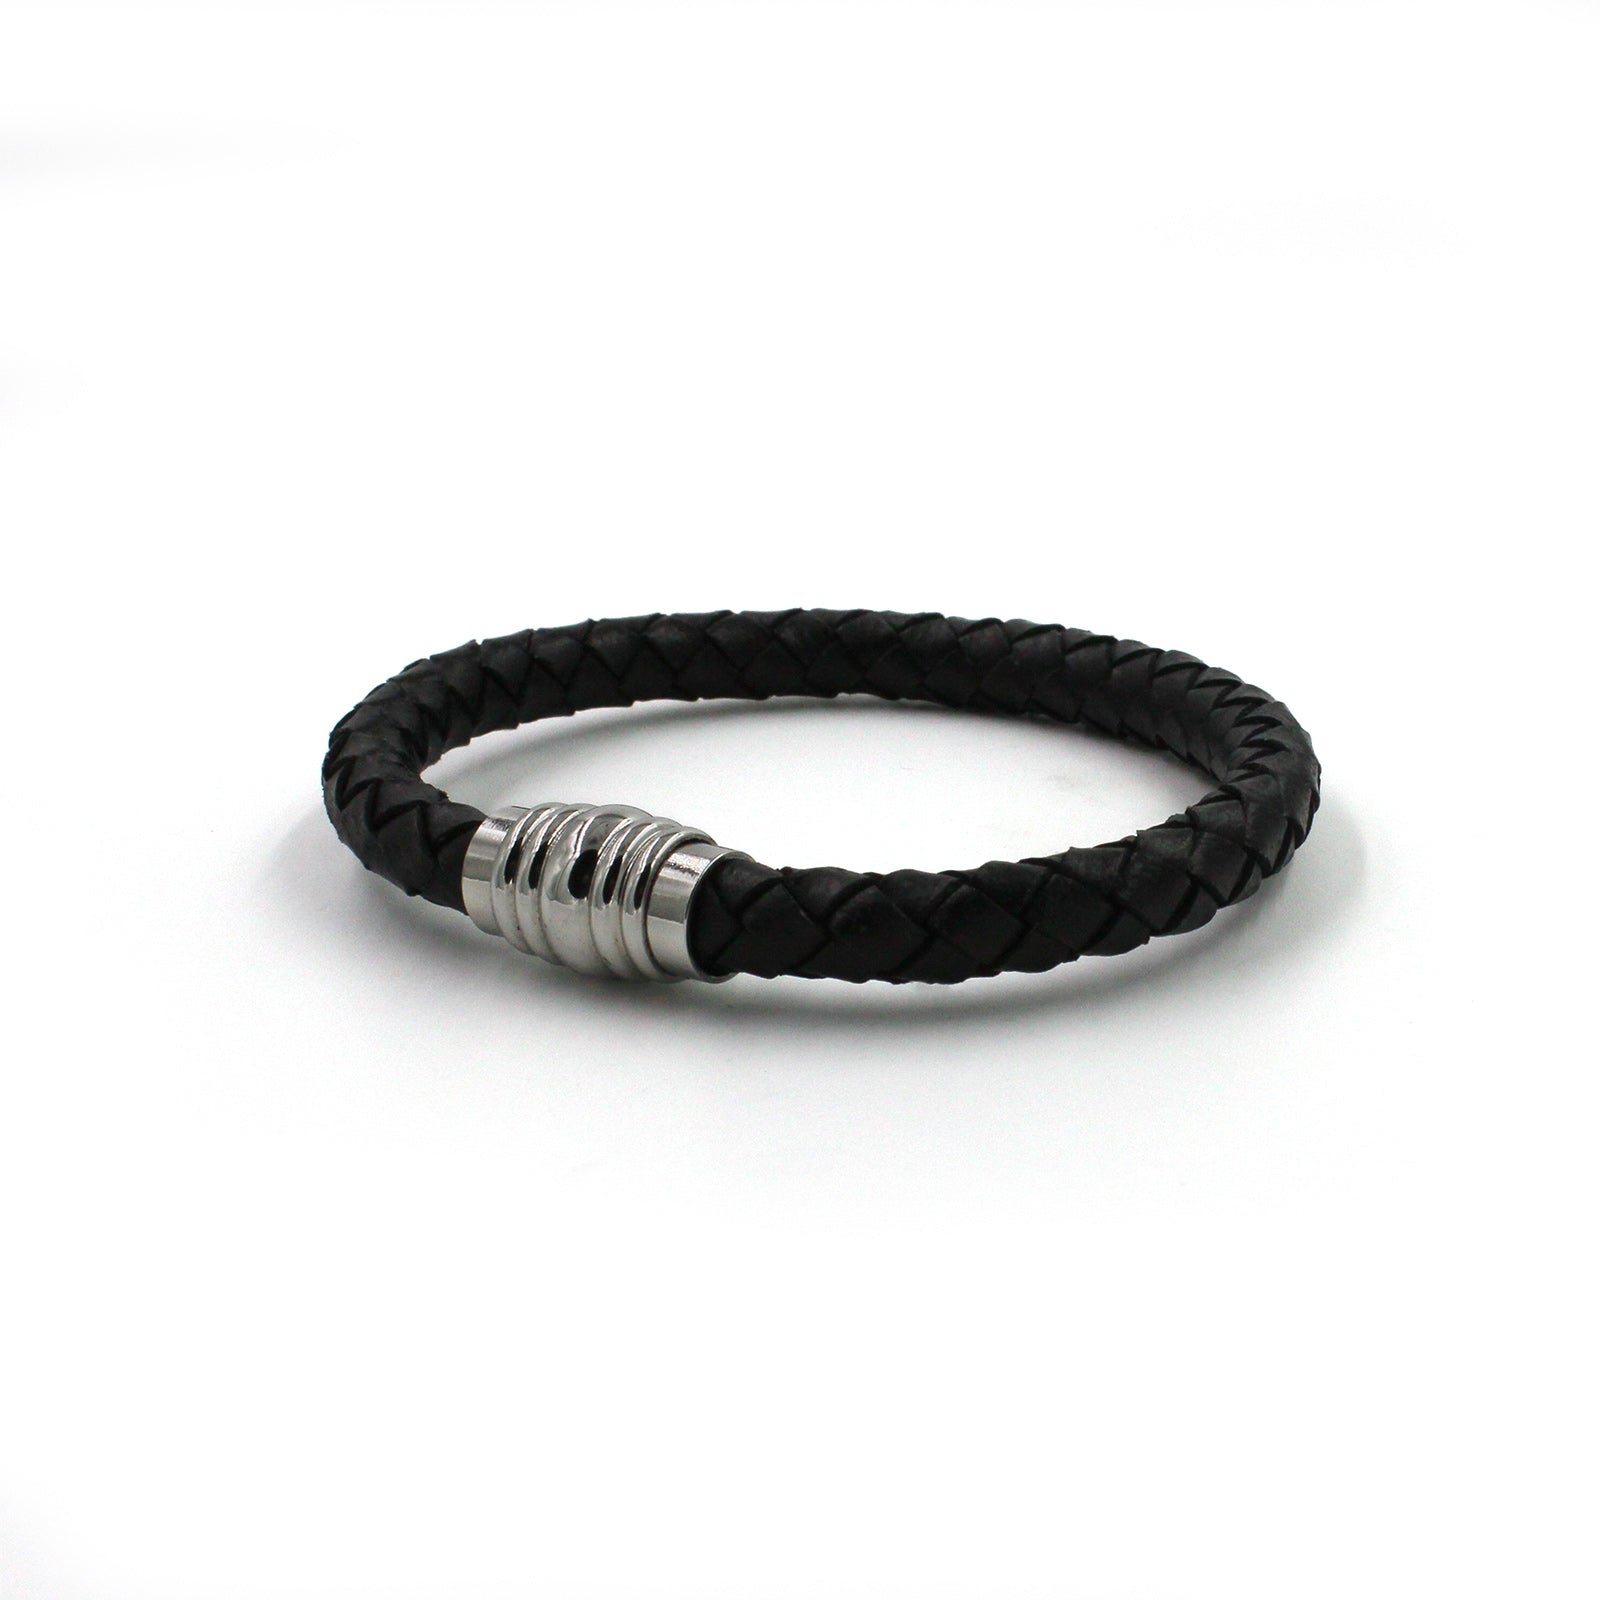 OEMBR03 Leather & Steel Bracelet